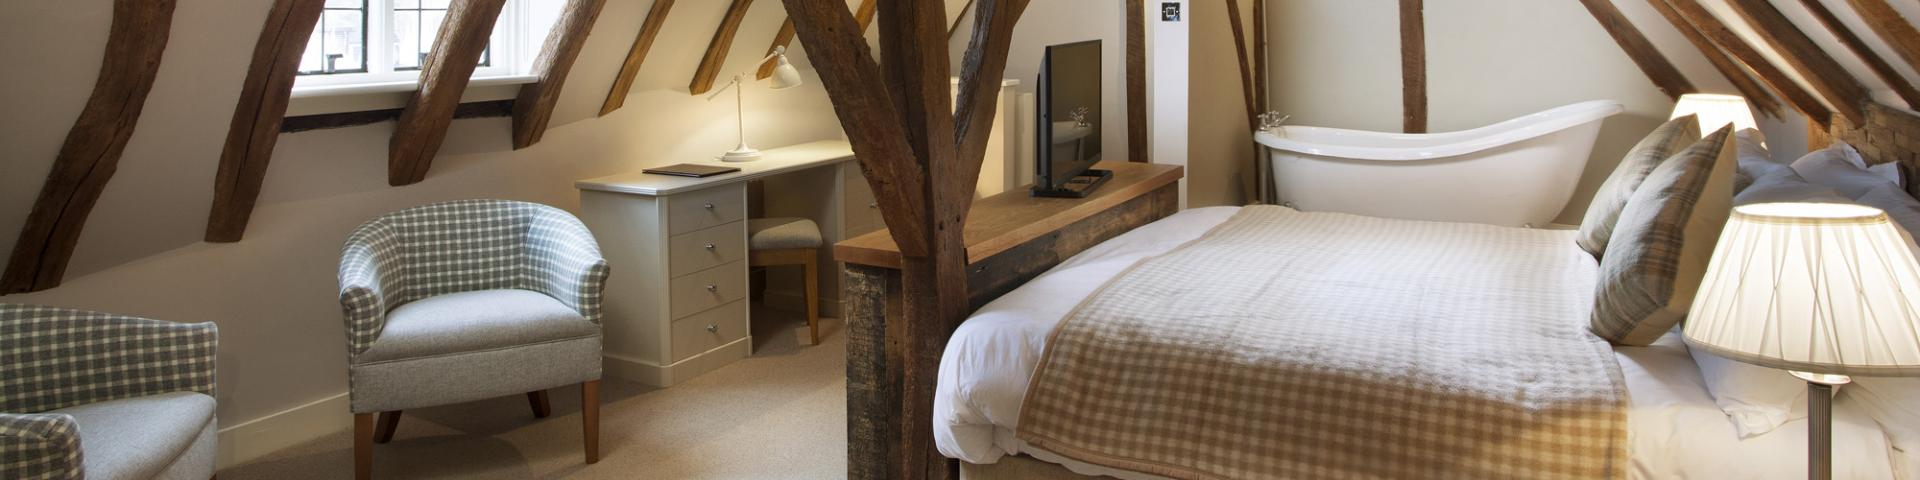 Sun Inn Faversham - Feature Room